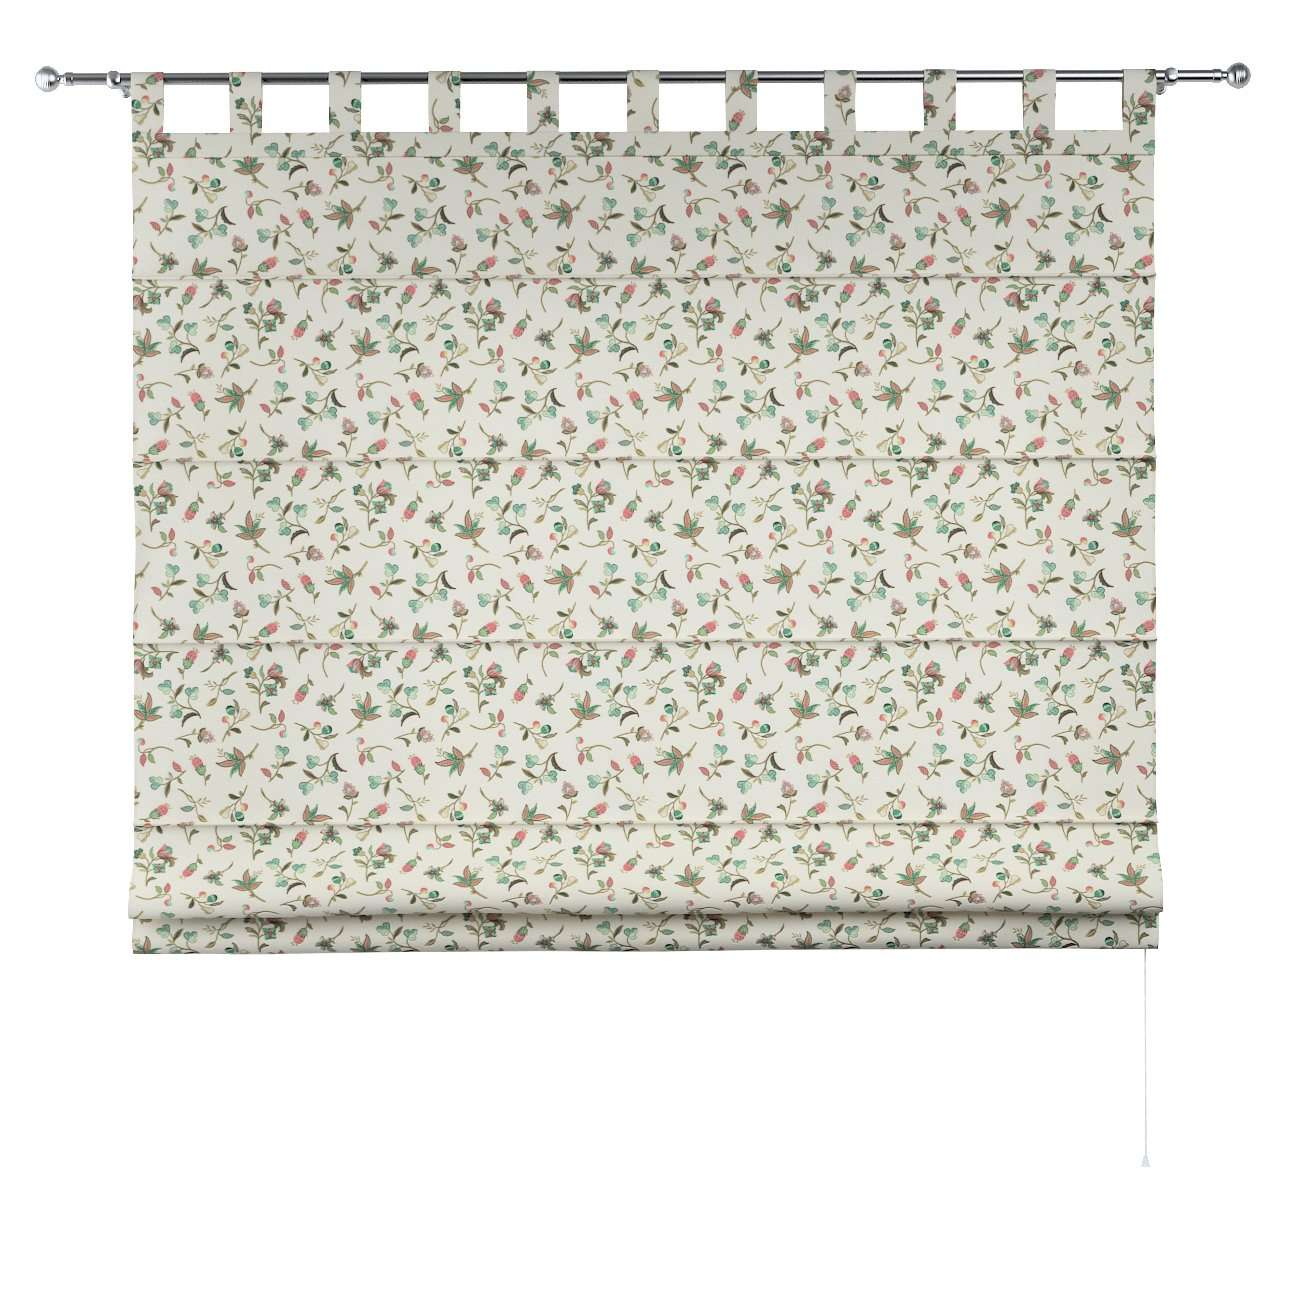 Verona tab top roman blind in collection Londres, fabric: 122-02